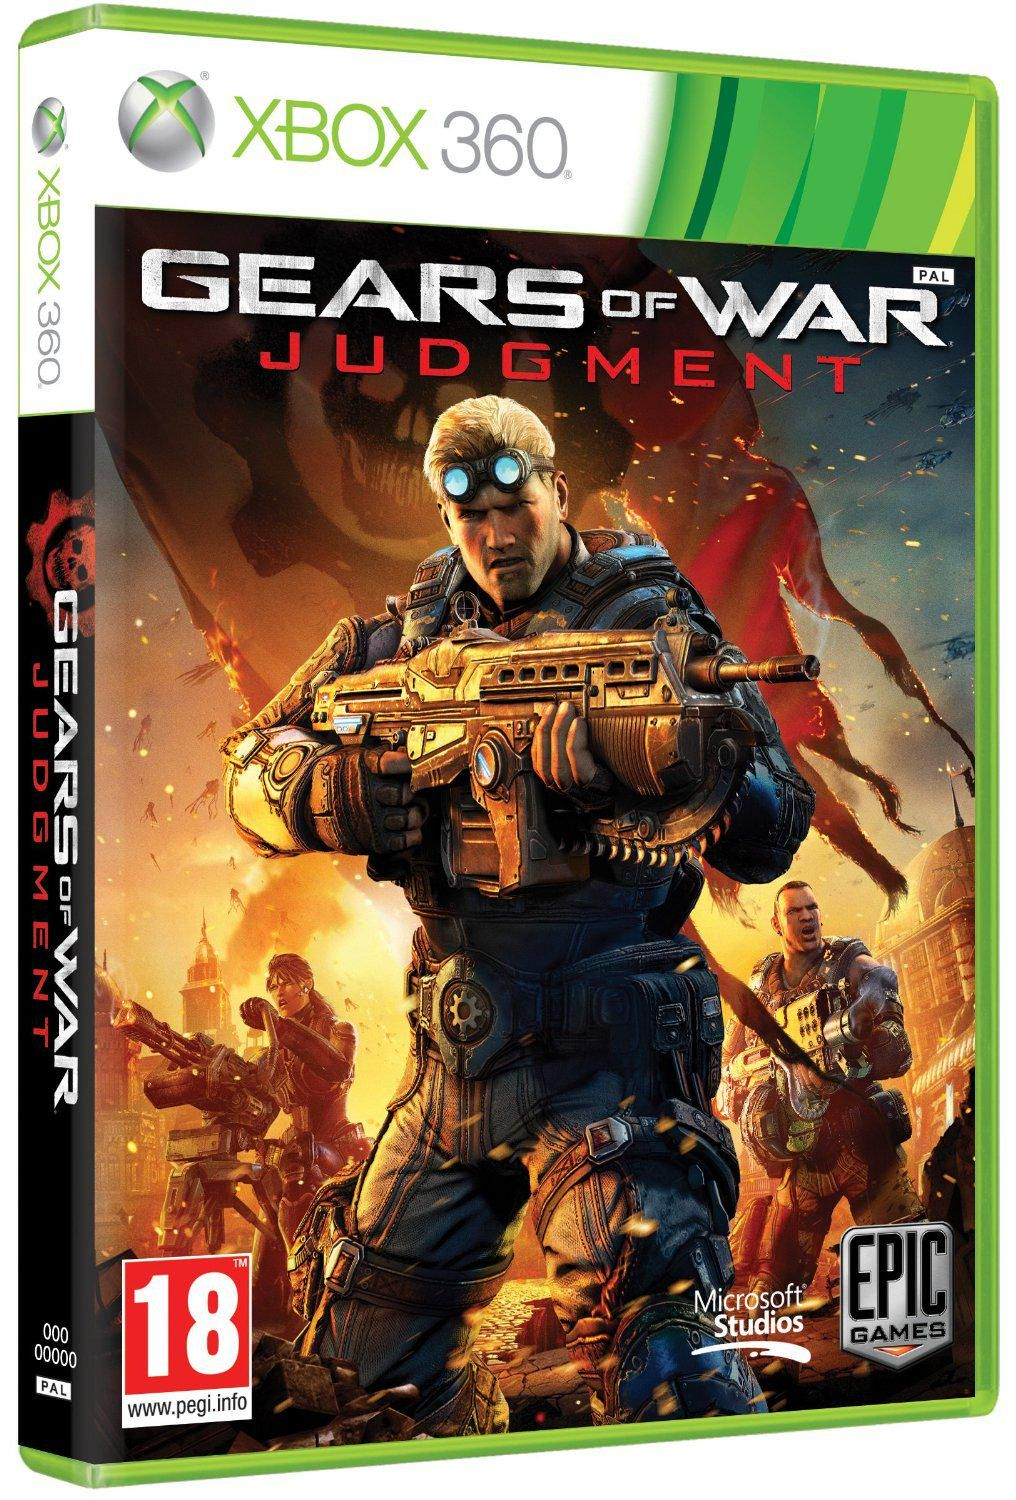 BLACK FRIDAY DEAL STARTING SOON Gears of War: Judgement (Xbox 360)